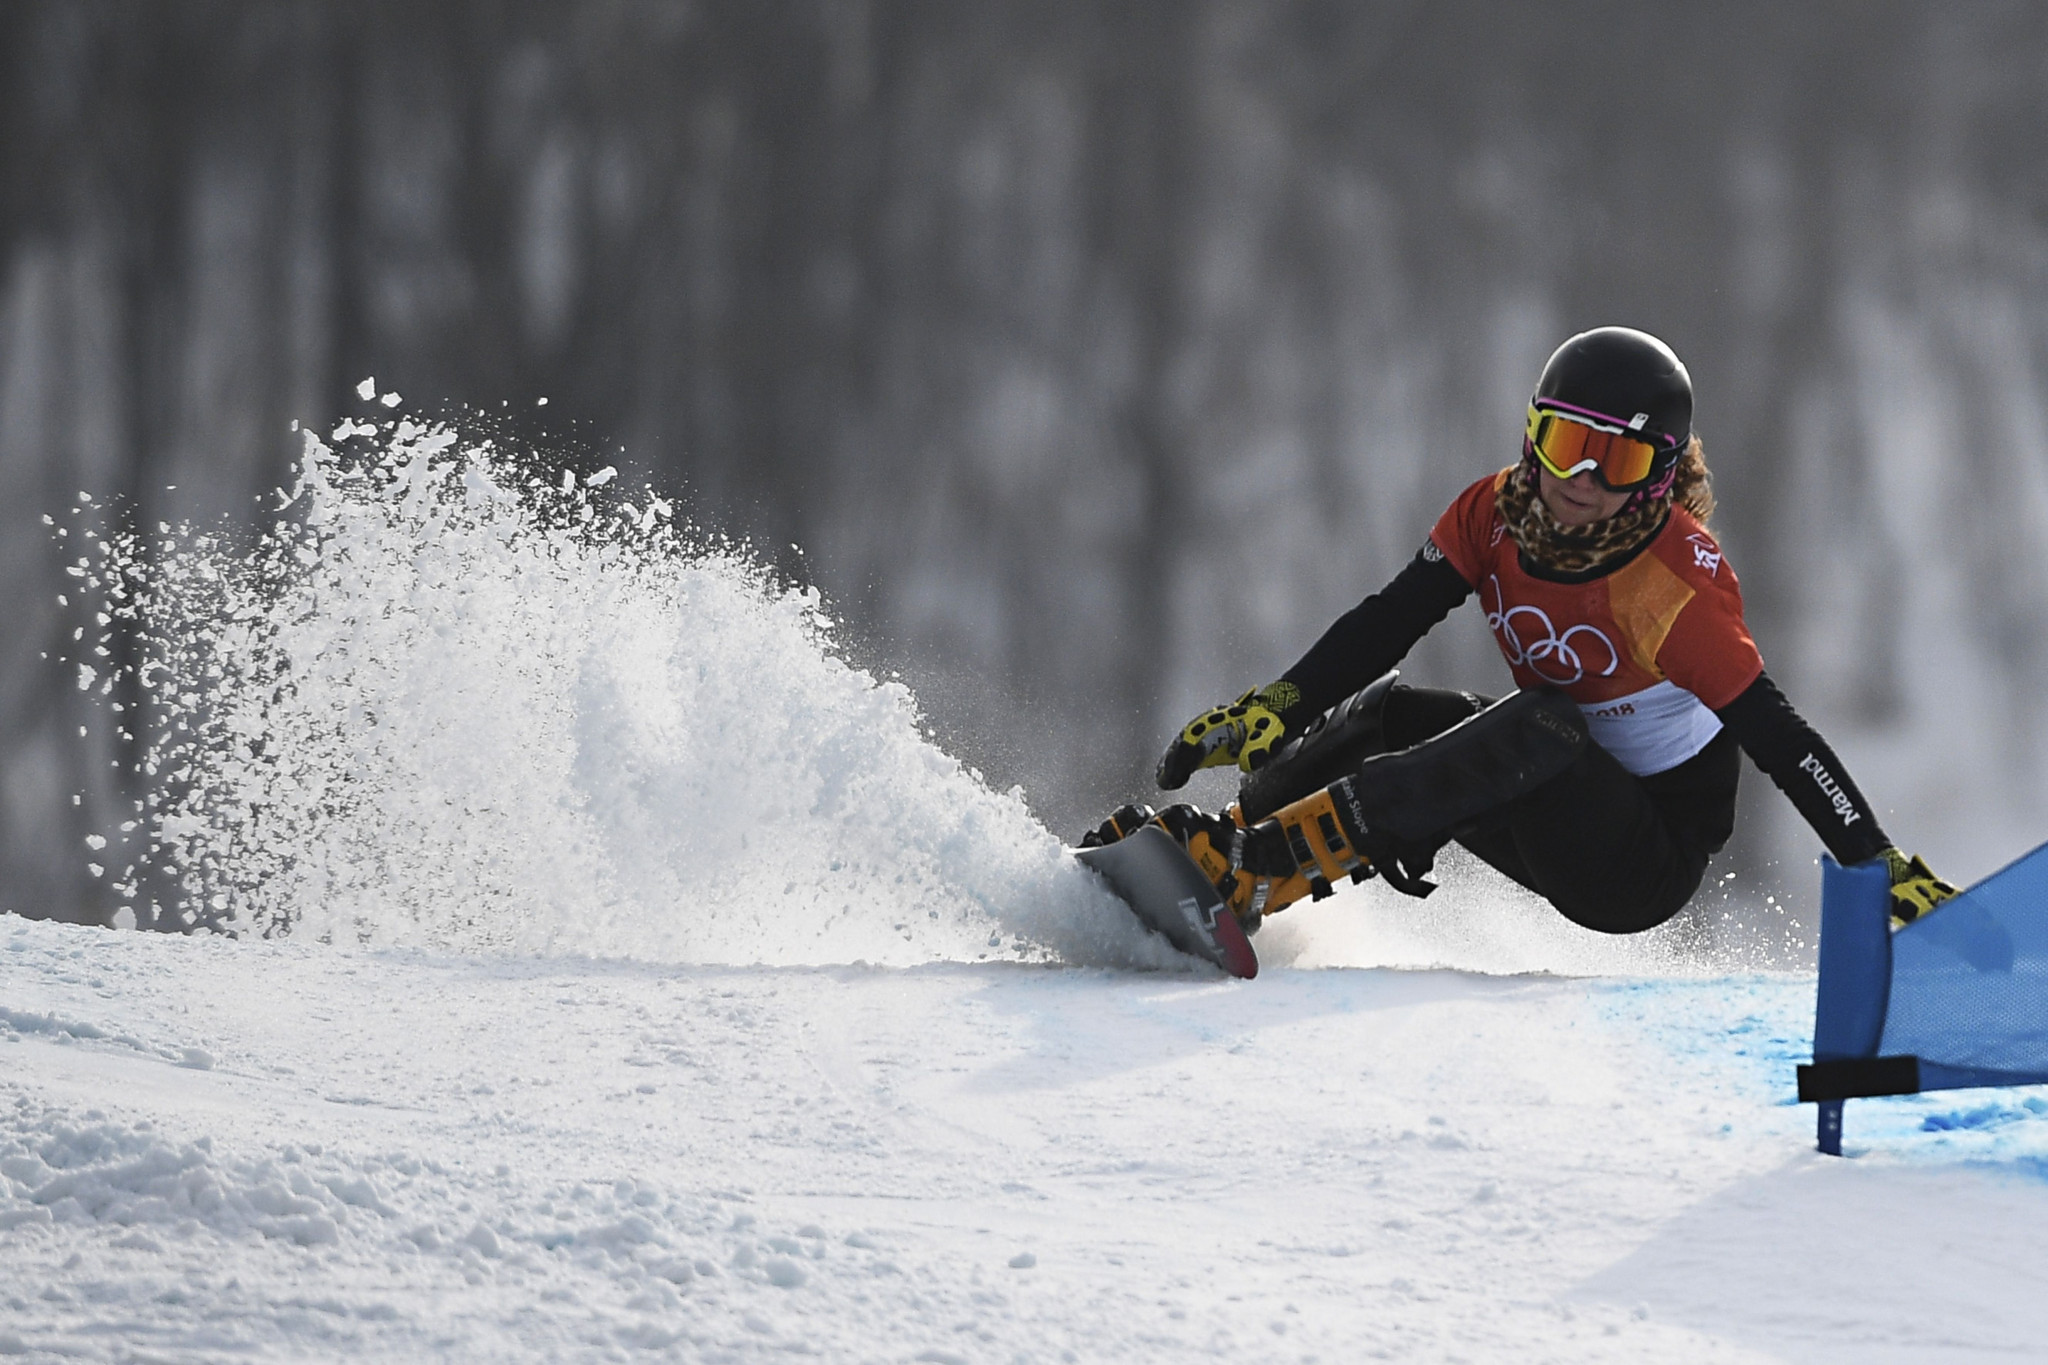 Ramona Theresia Hofmeister leads the women's standings ©Getty Images